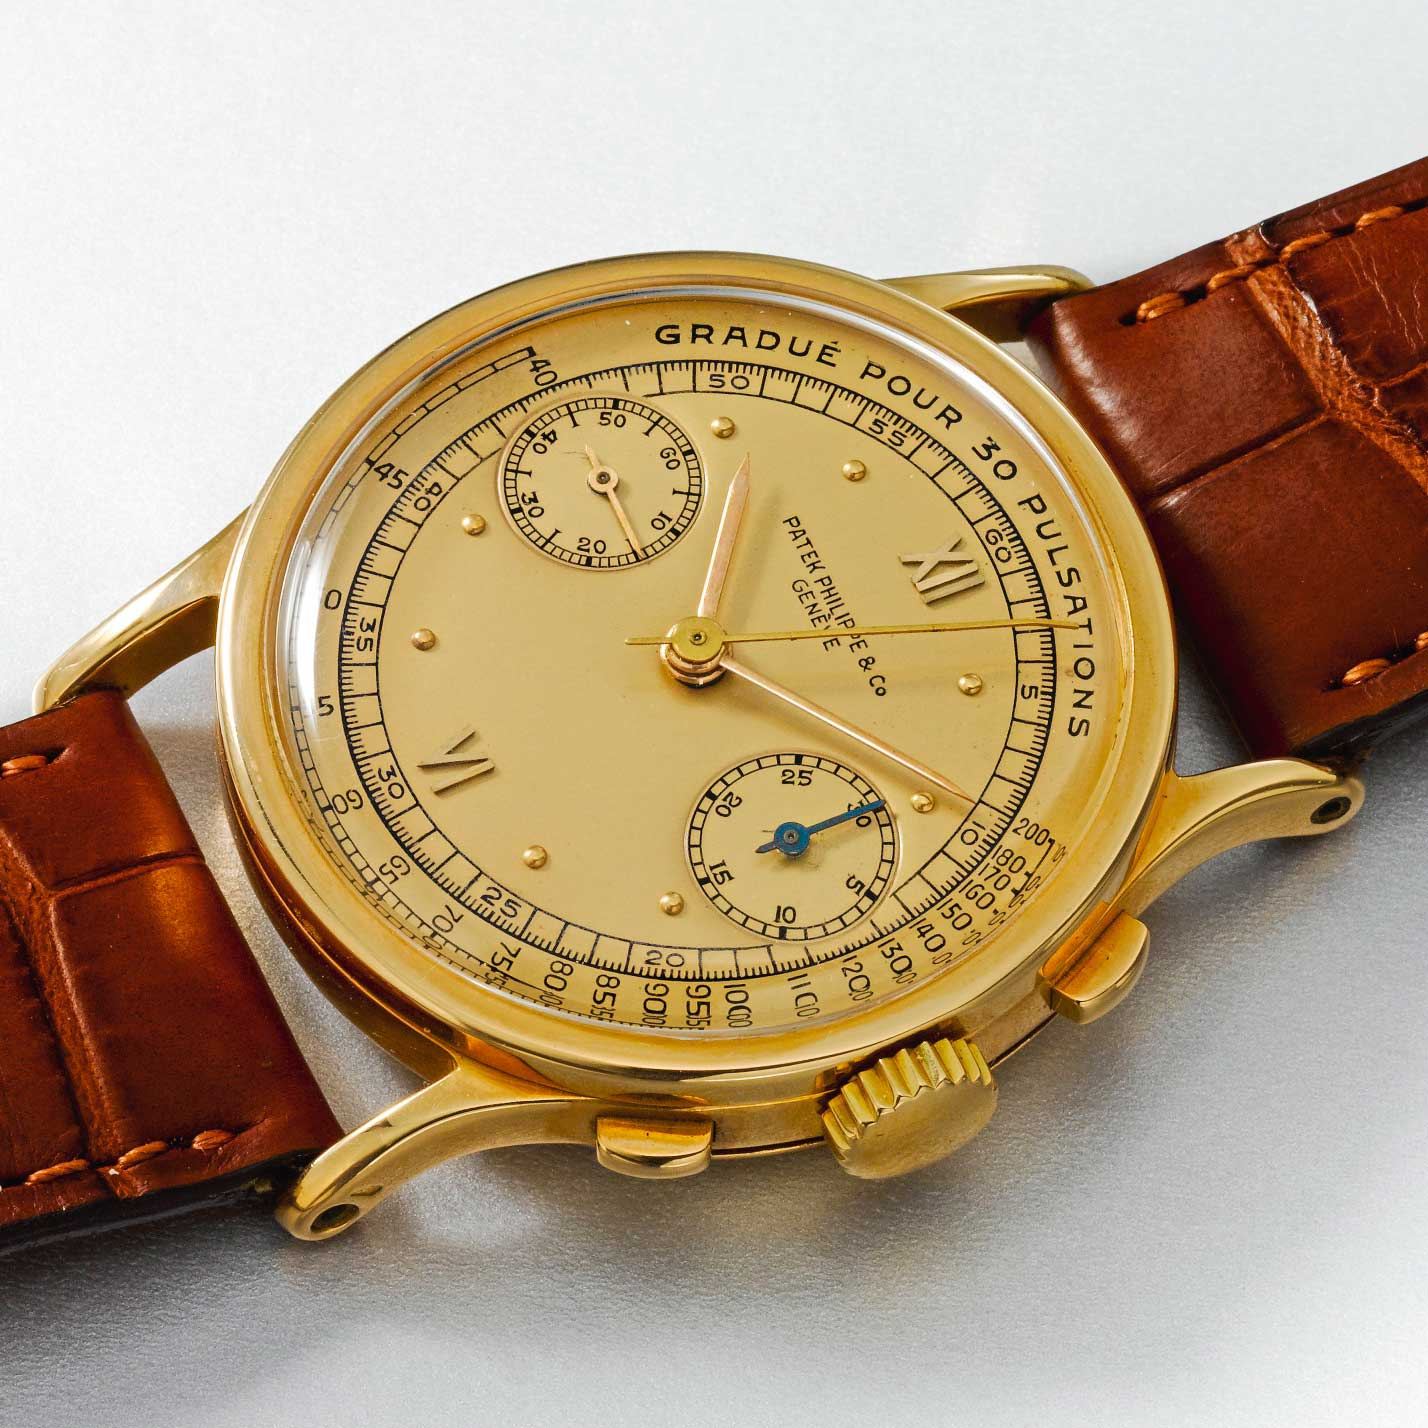 1940 Patek Philippe ref. 533 pink gold chronograph with satin finished pink dial, Roman numerals and pulsation scale (Image: Sothebys.com)